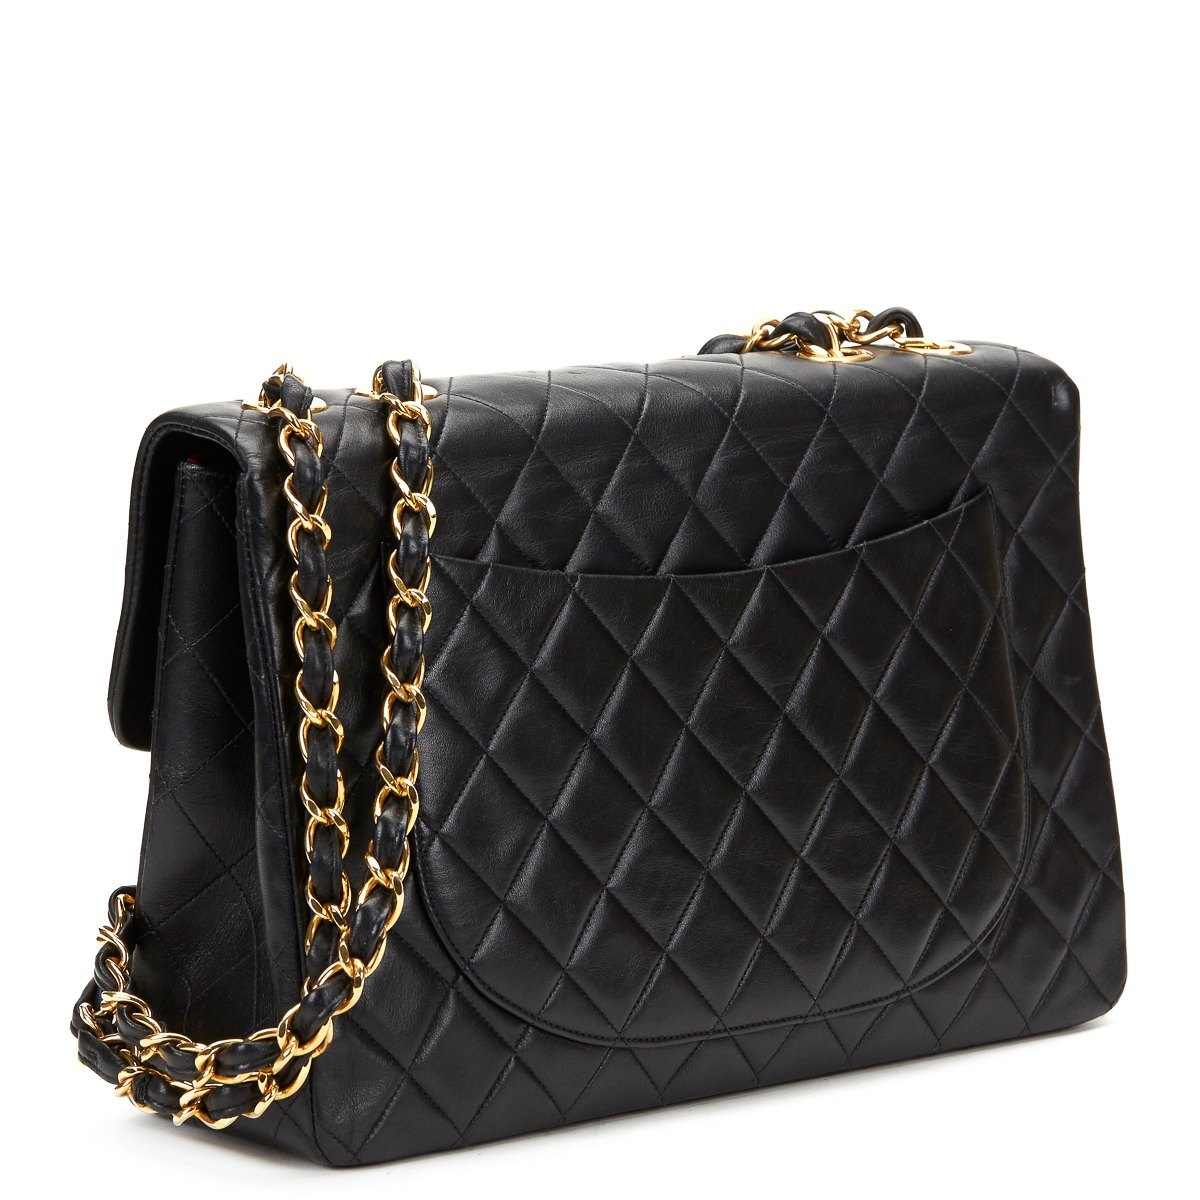 84976fd653d3 Chanel Maxi Bag Original Price | Stanford Center for Opportunity ...